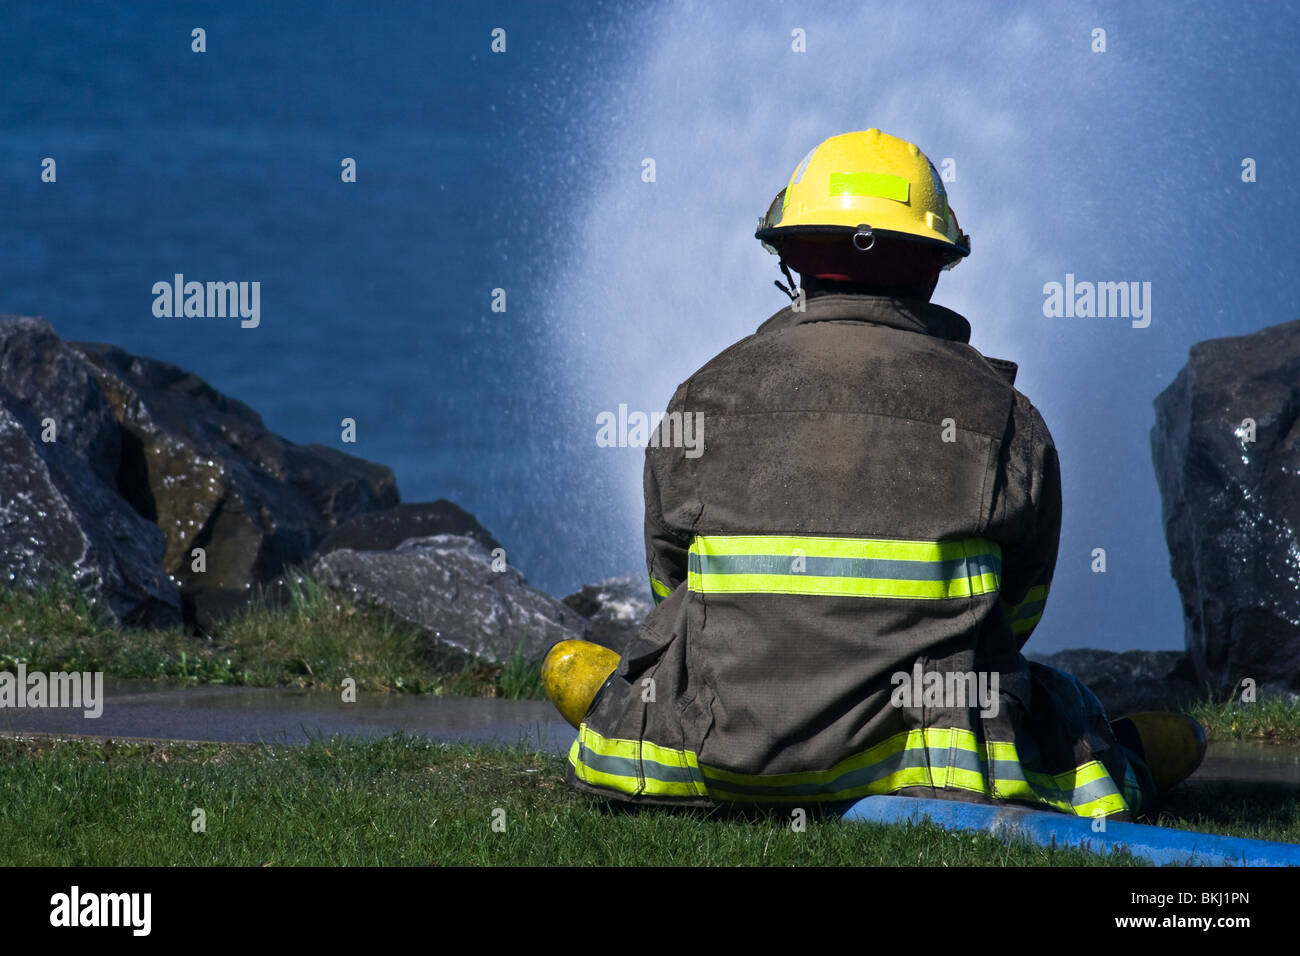 New fireman sitting on a hose under pressure - Stock Image